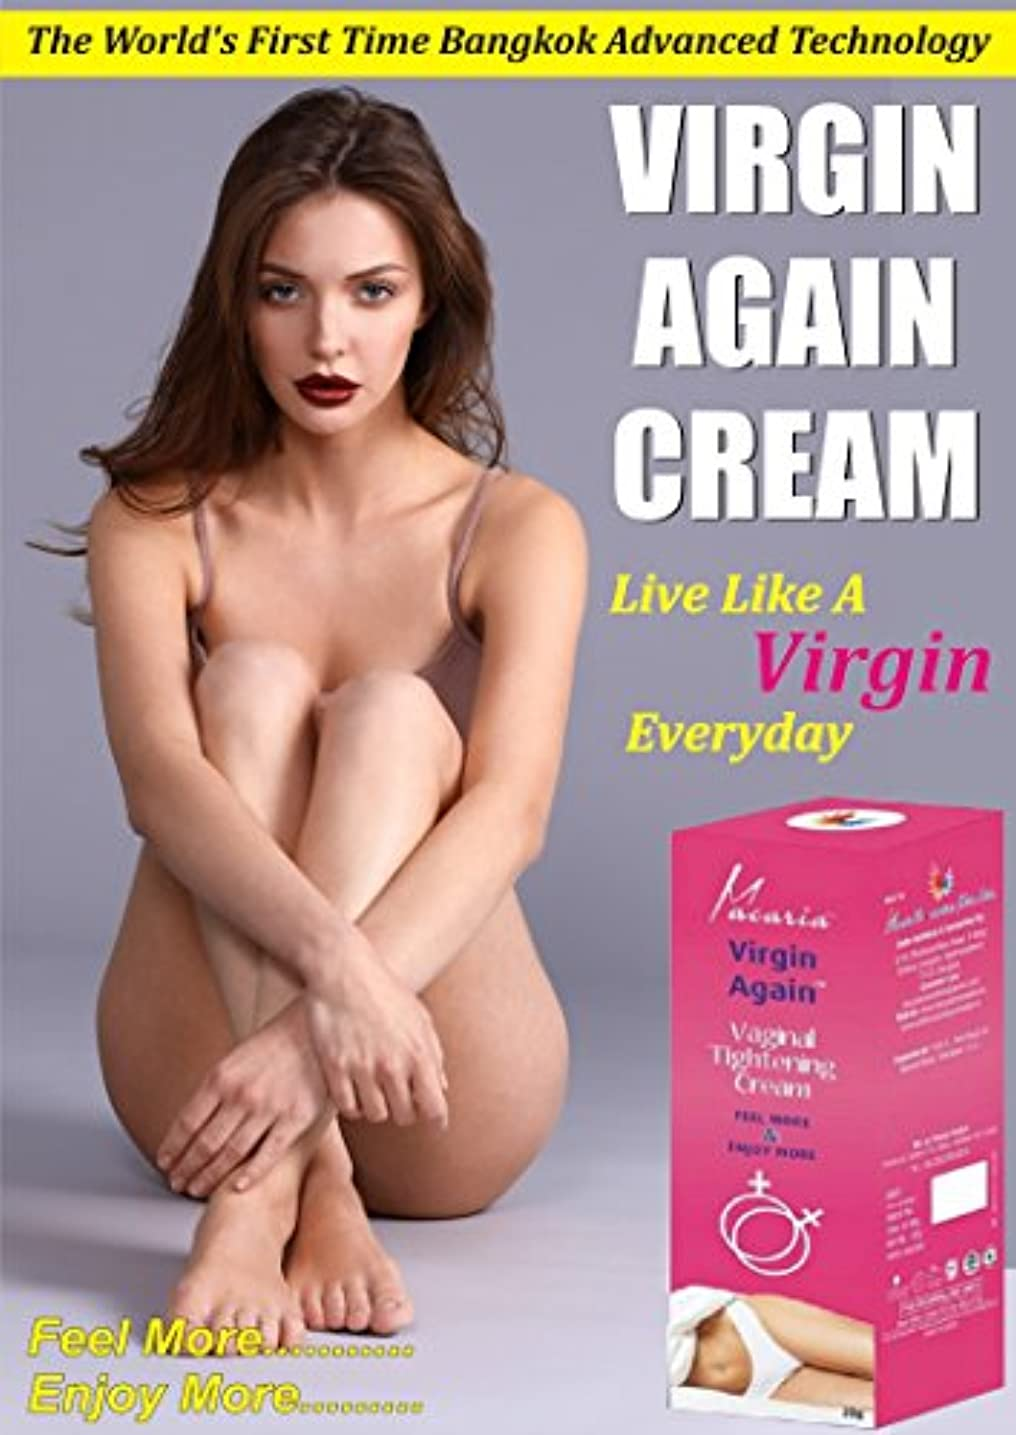 BUST ENHANCEMENT CREAM